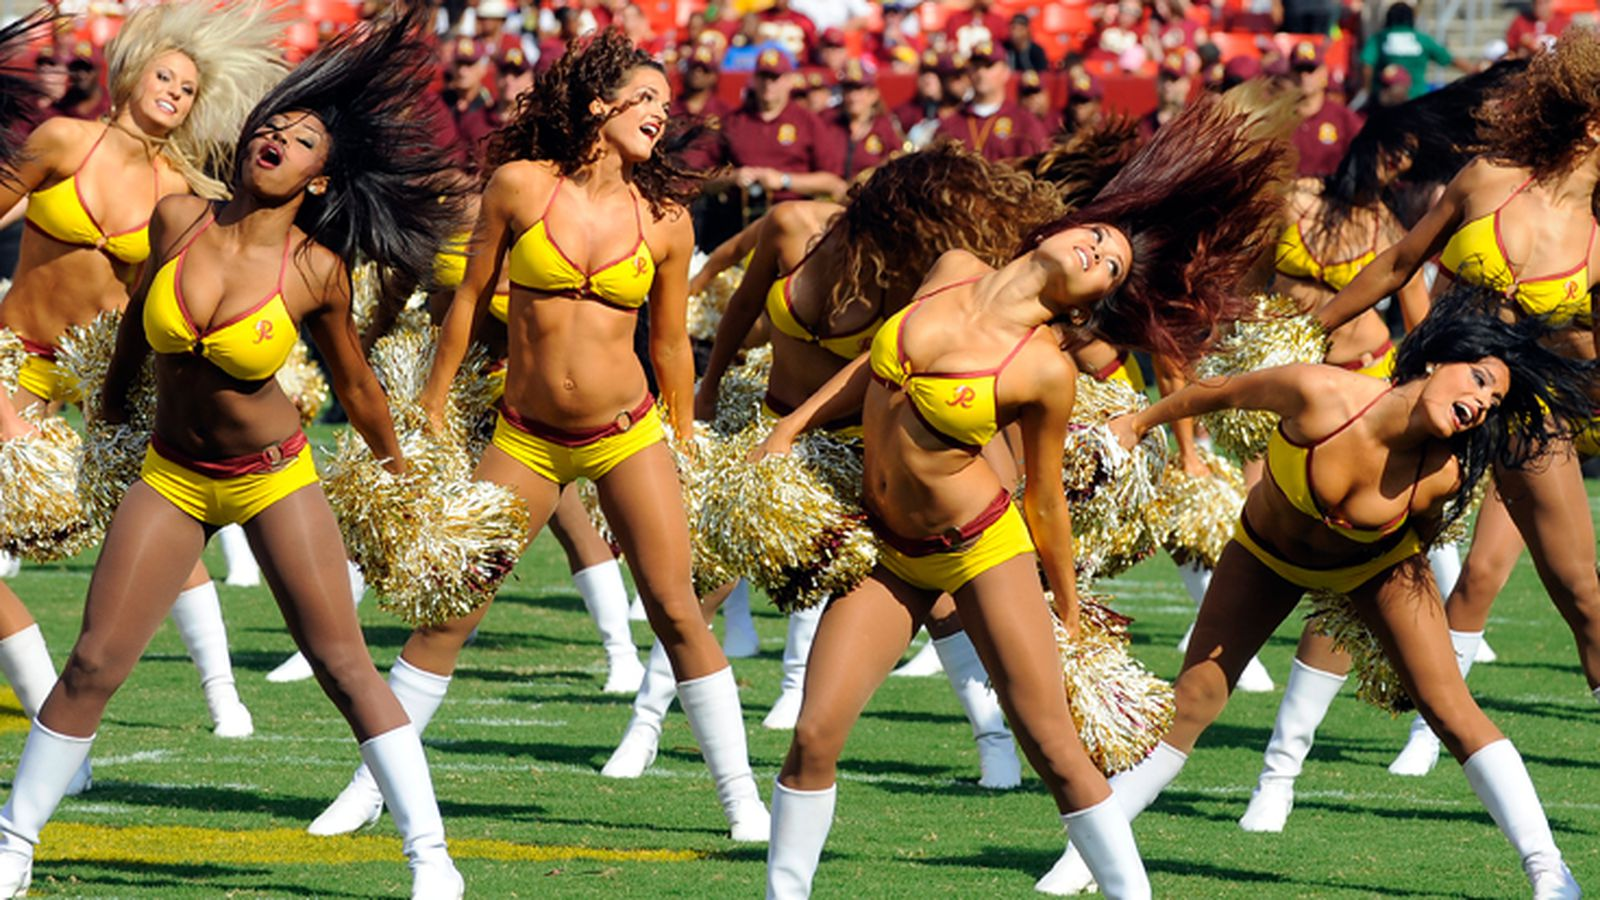 Cheerleaders reportedly accuse redskins of pimping us out, giving access to topless shoot